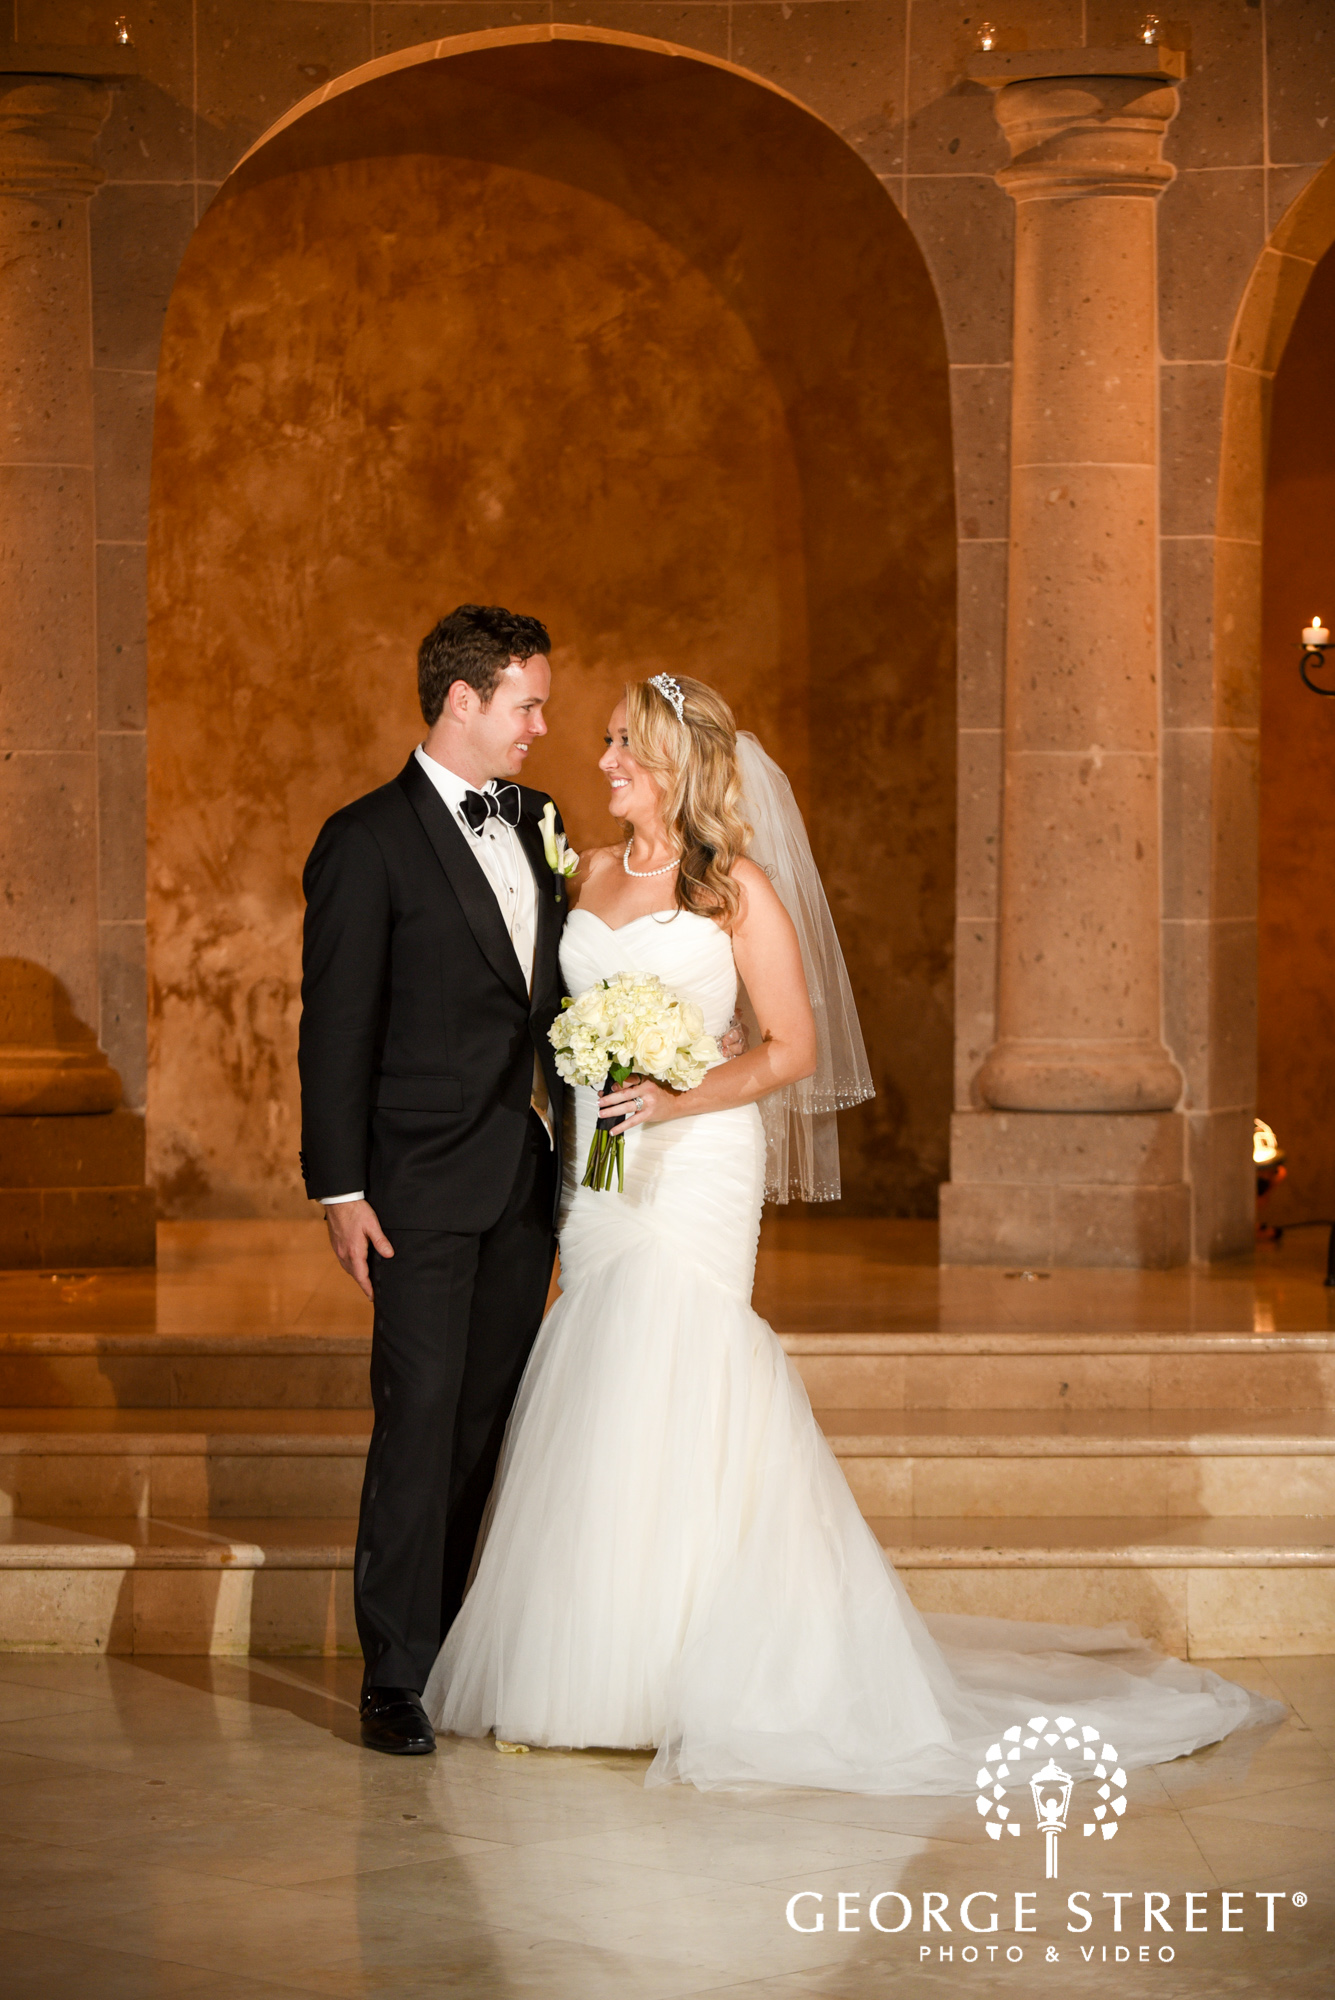 the bell tower on 34th bride and groom wedding photos 5